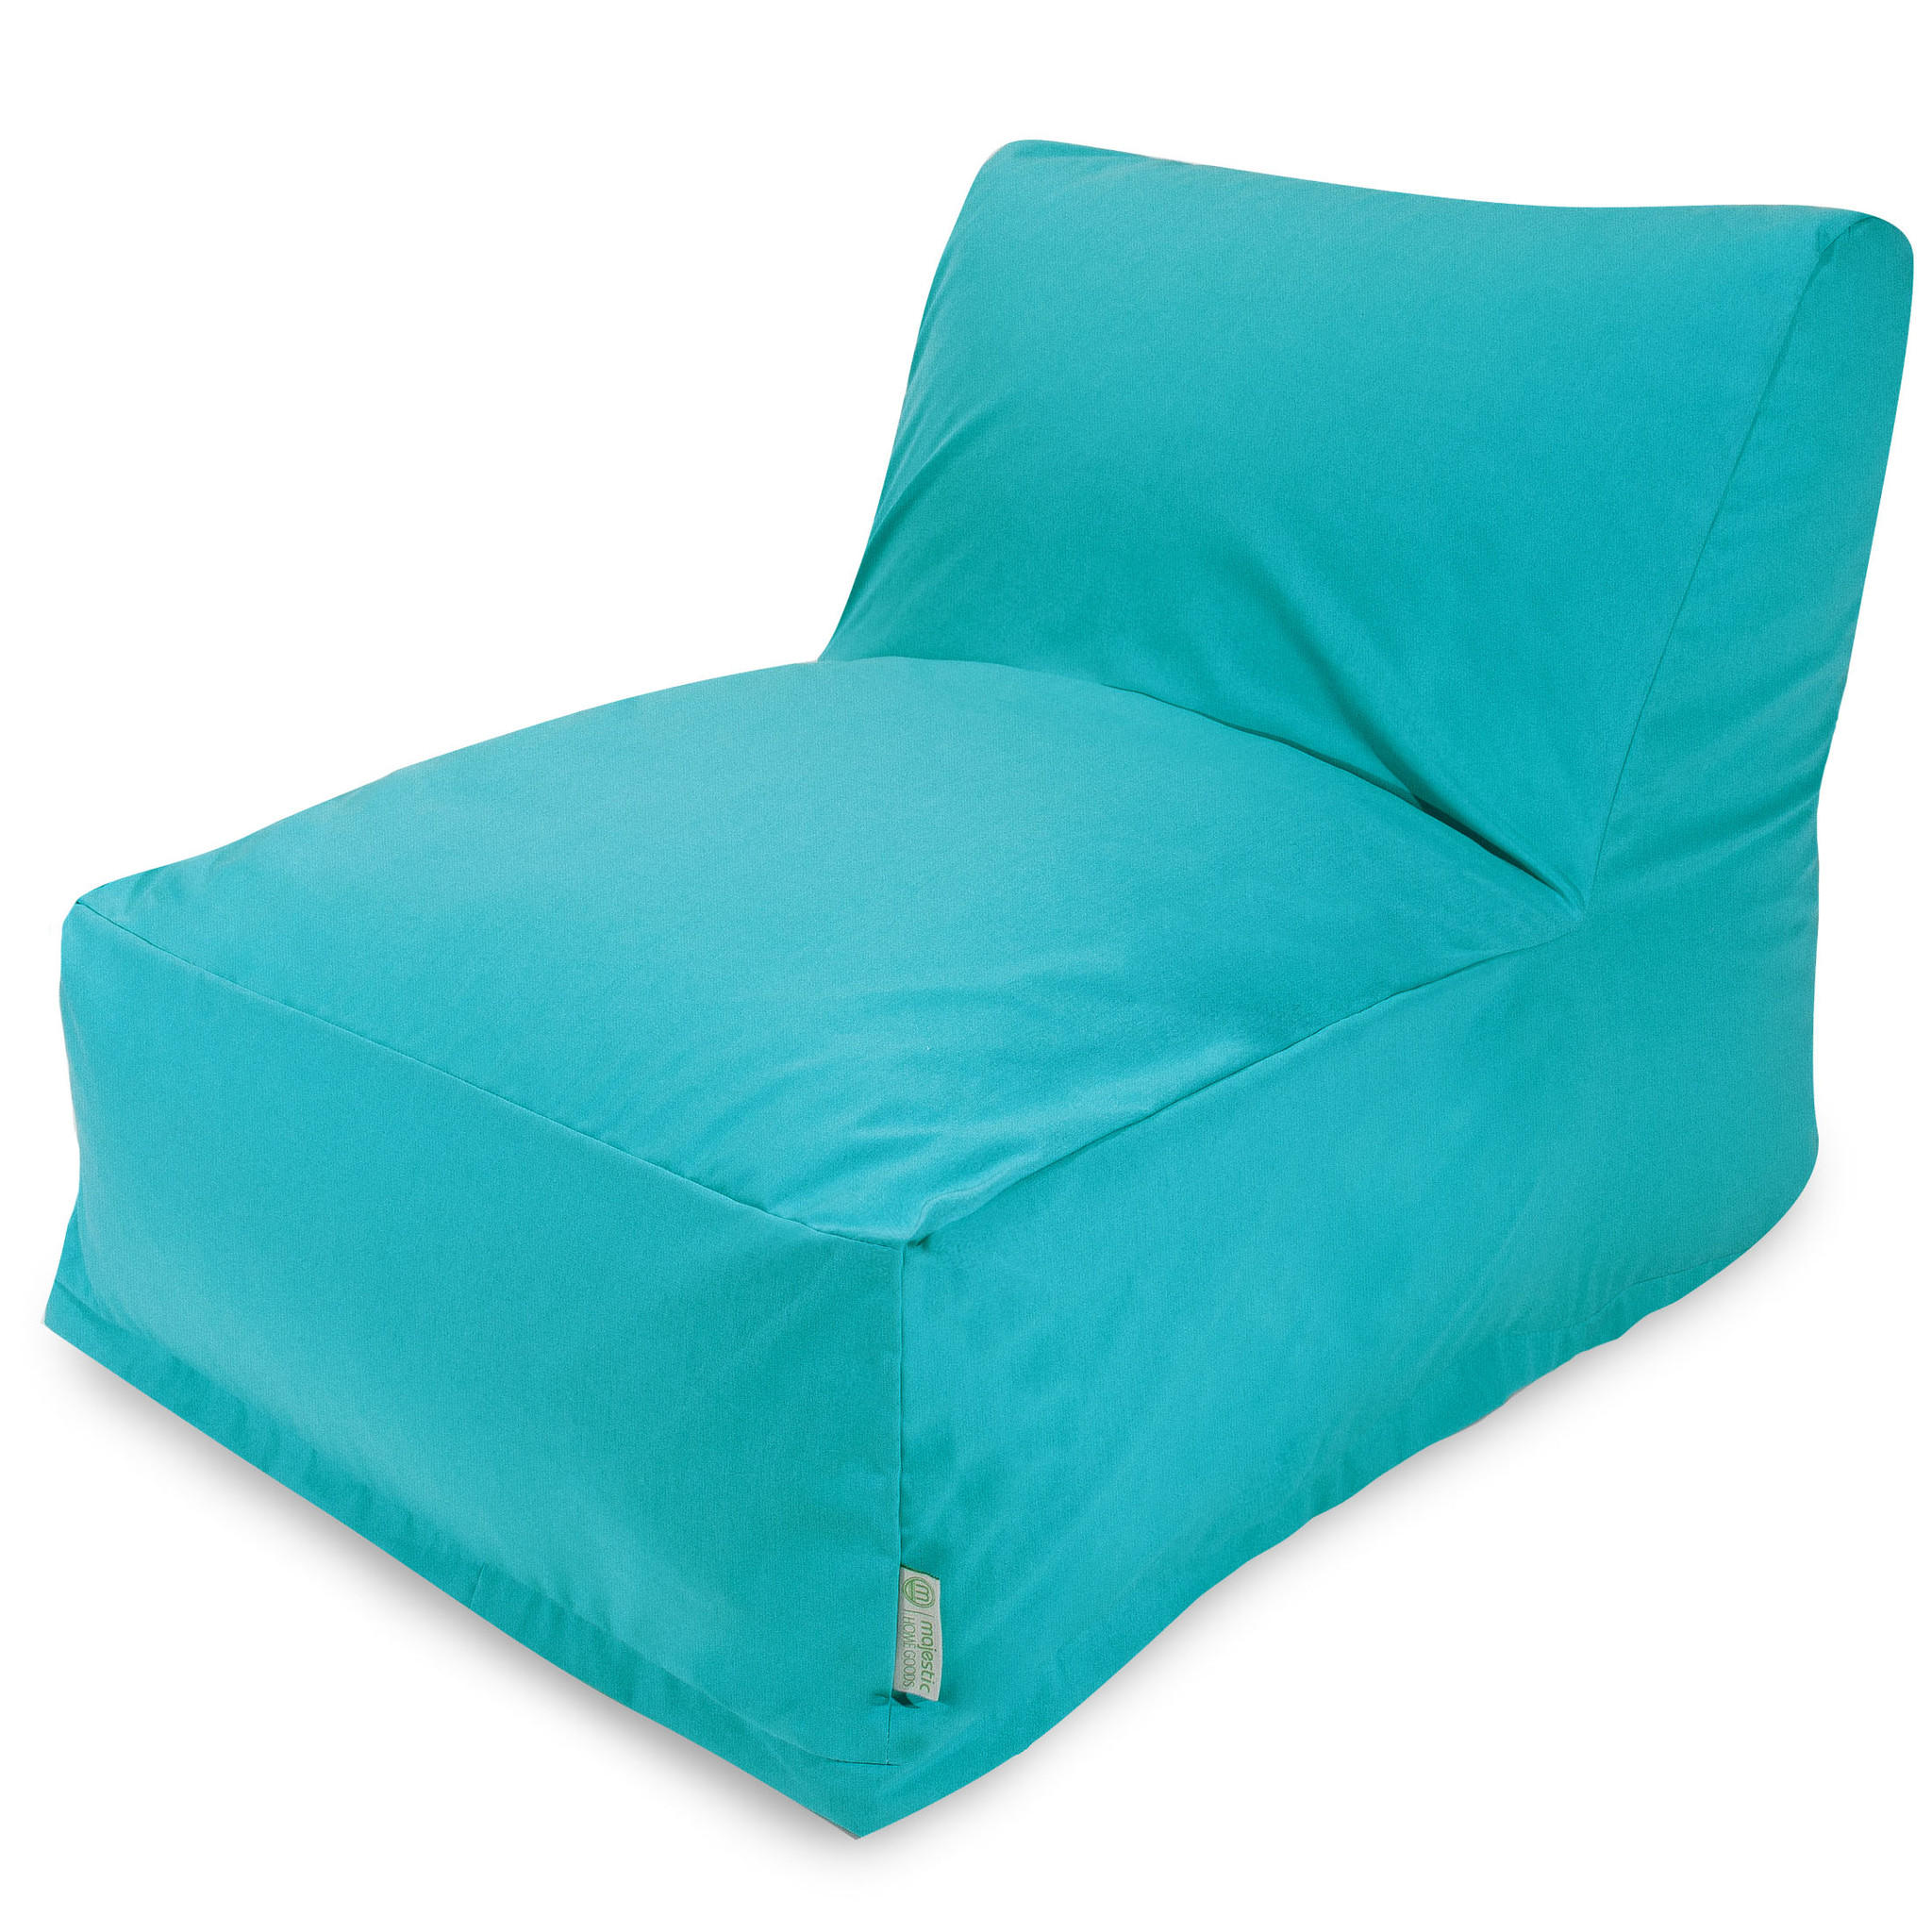 Teal Bean Bag Chair Lounger from Giddet